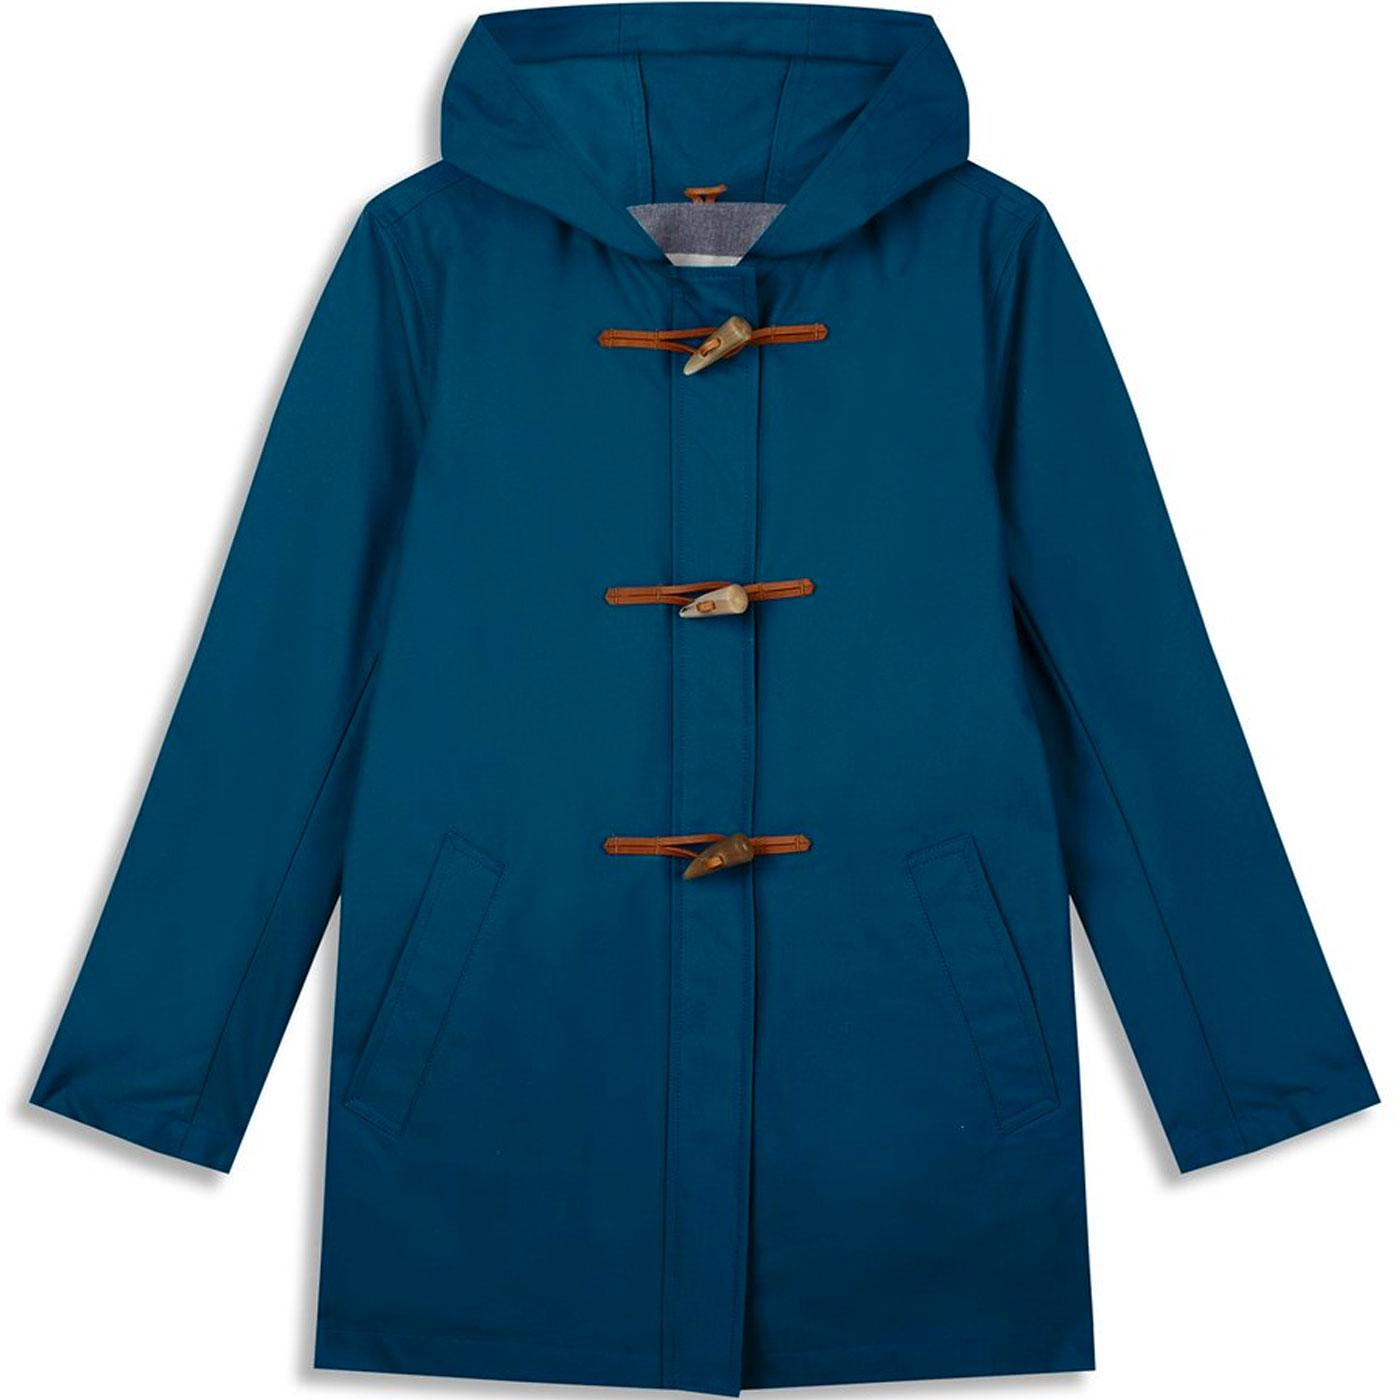 Lucy GLOVERALL Women's Showerproof Duffle Coat P